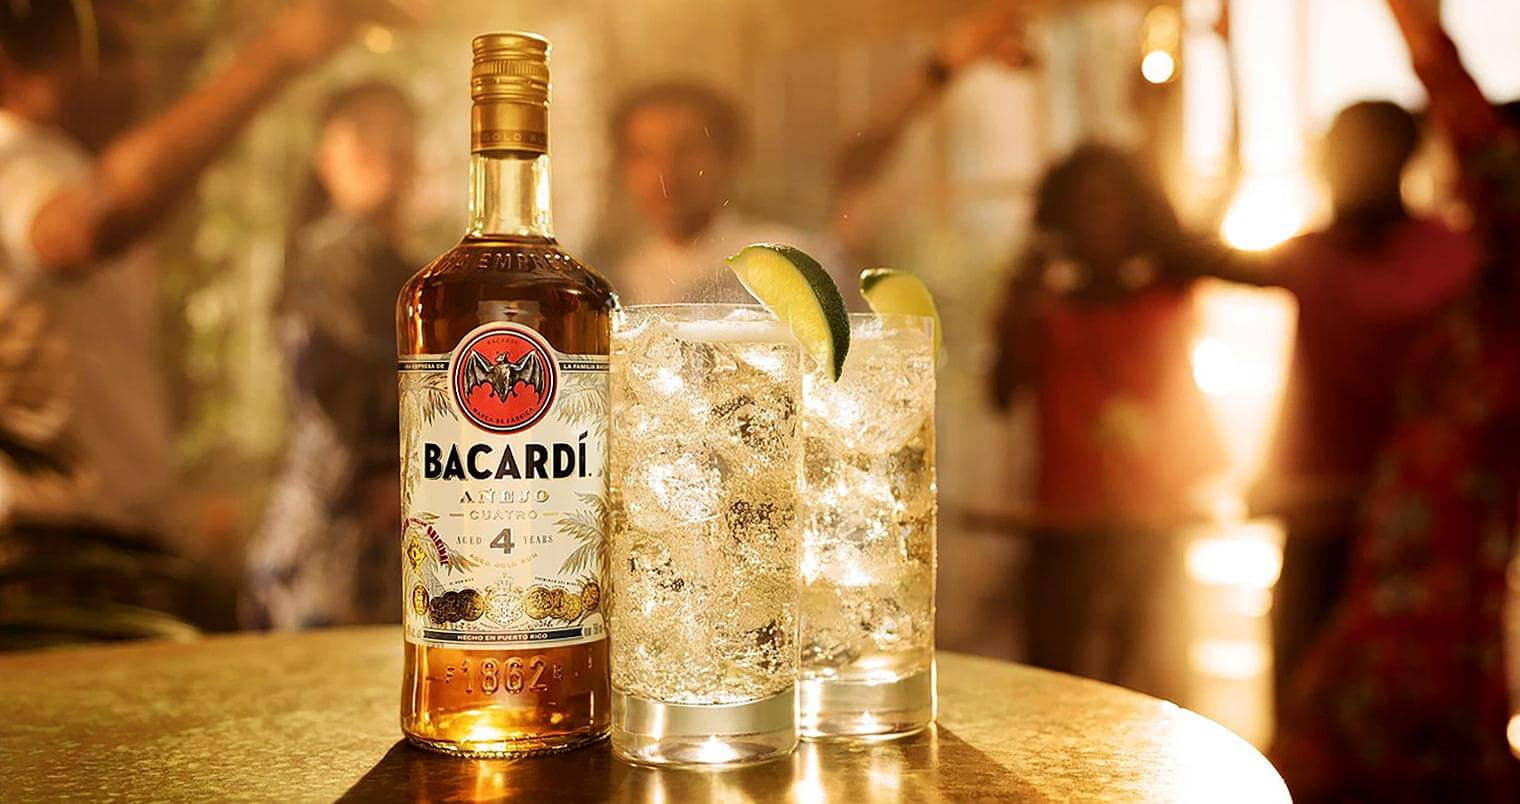 BACARDÍ Cuatro mismo, bottle and cocktails, people dancing in back, featured image